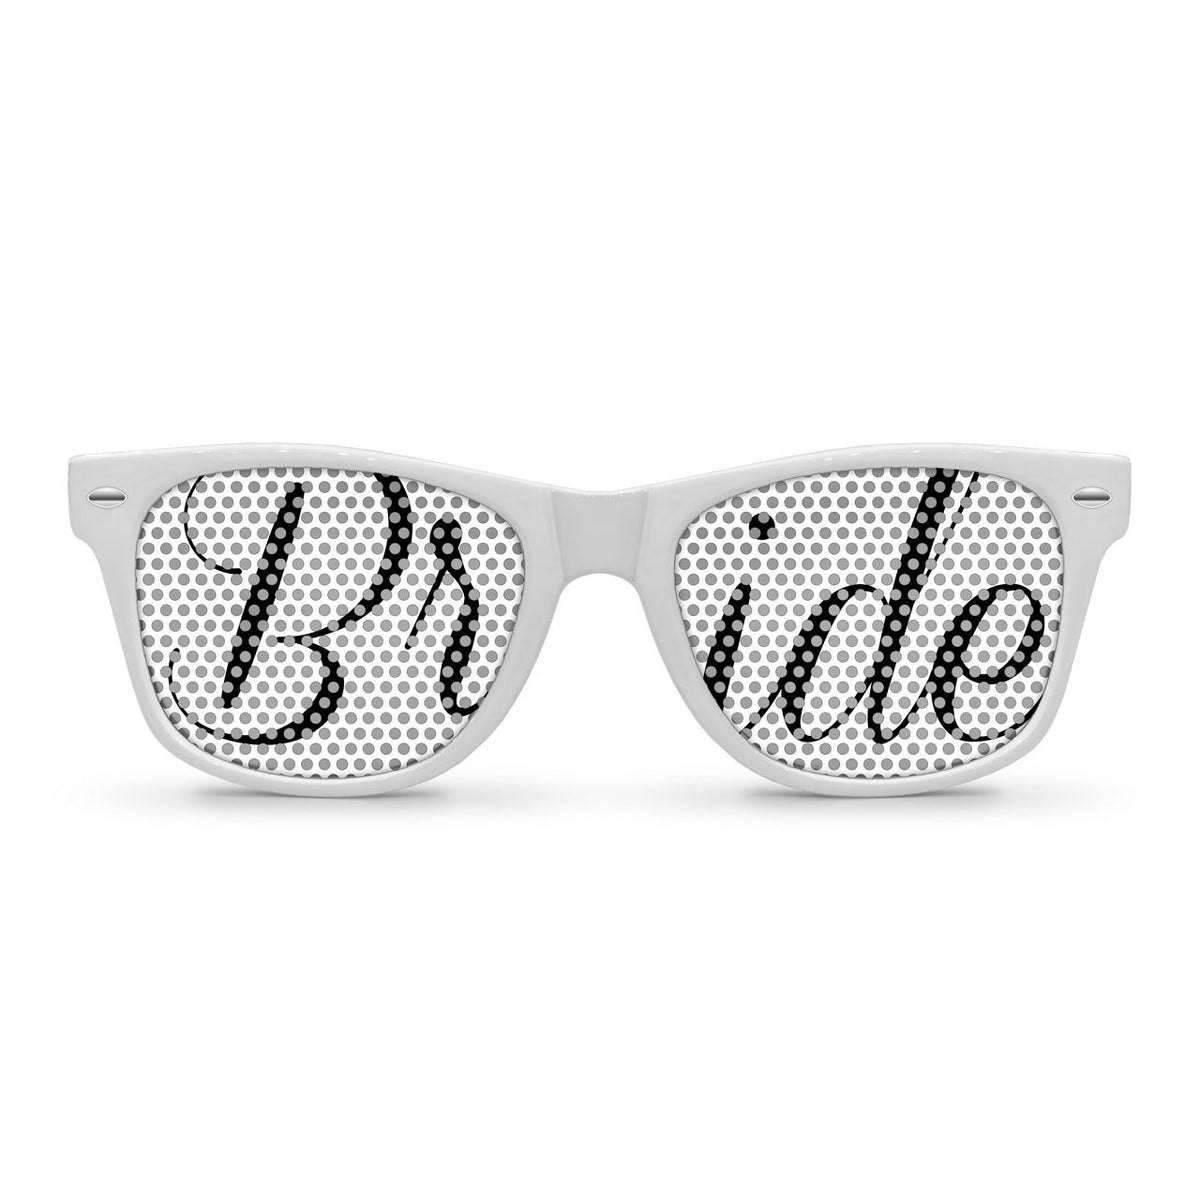 6 Bachelorette Party Sunglasses